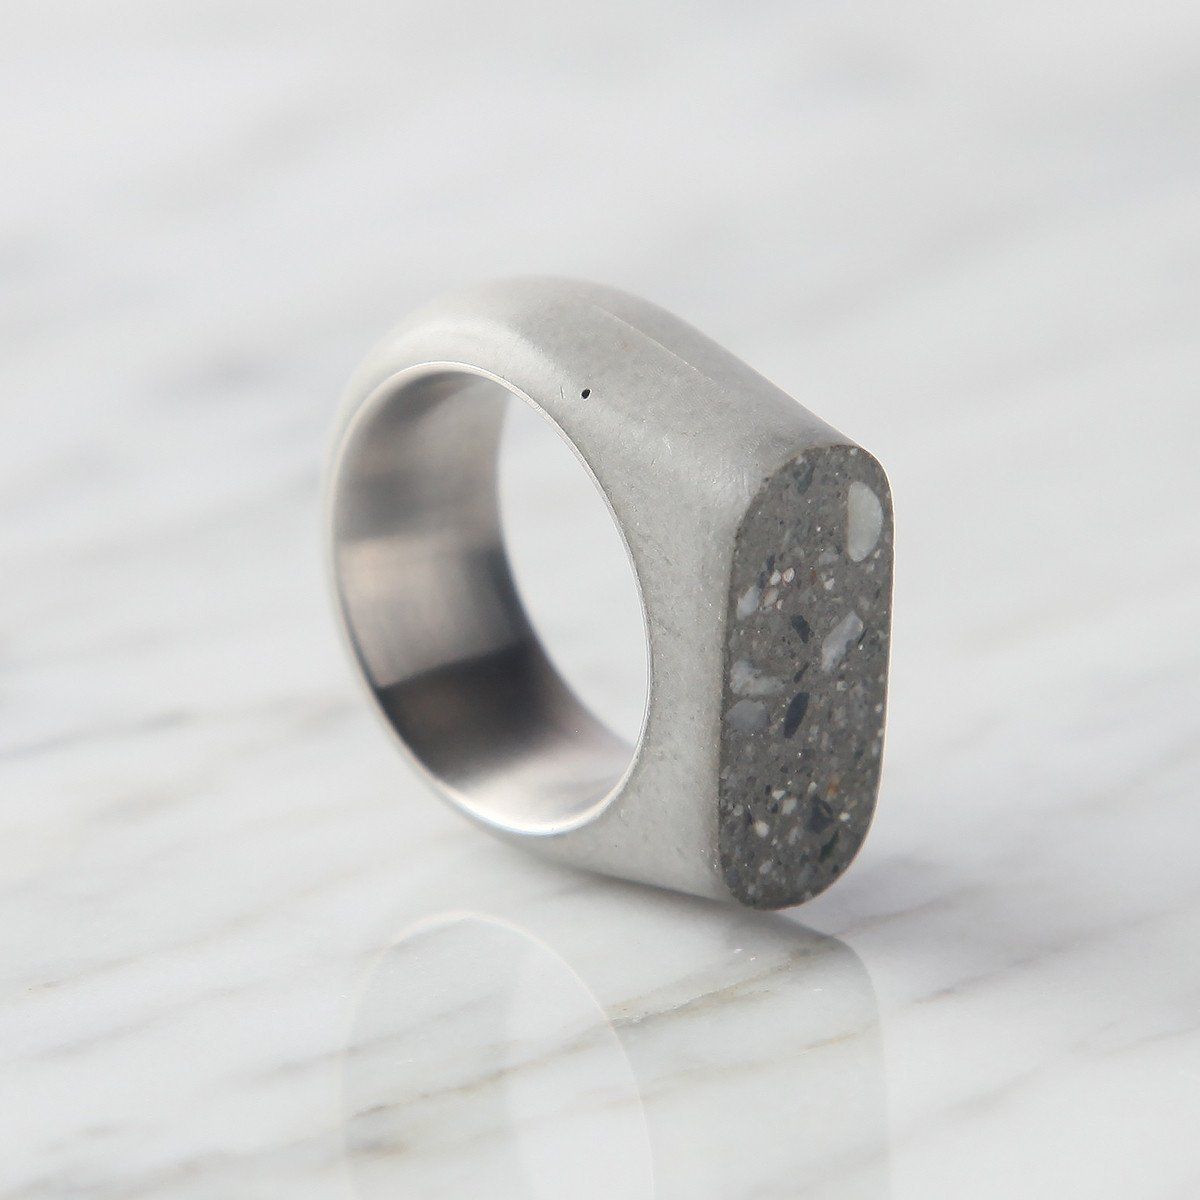 Upright Concrete Ring -33623